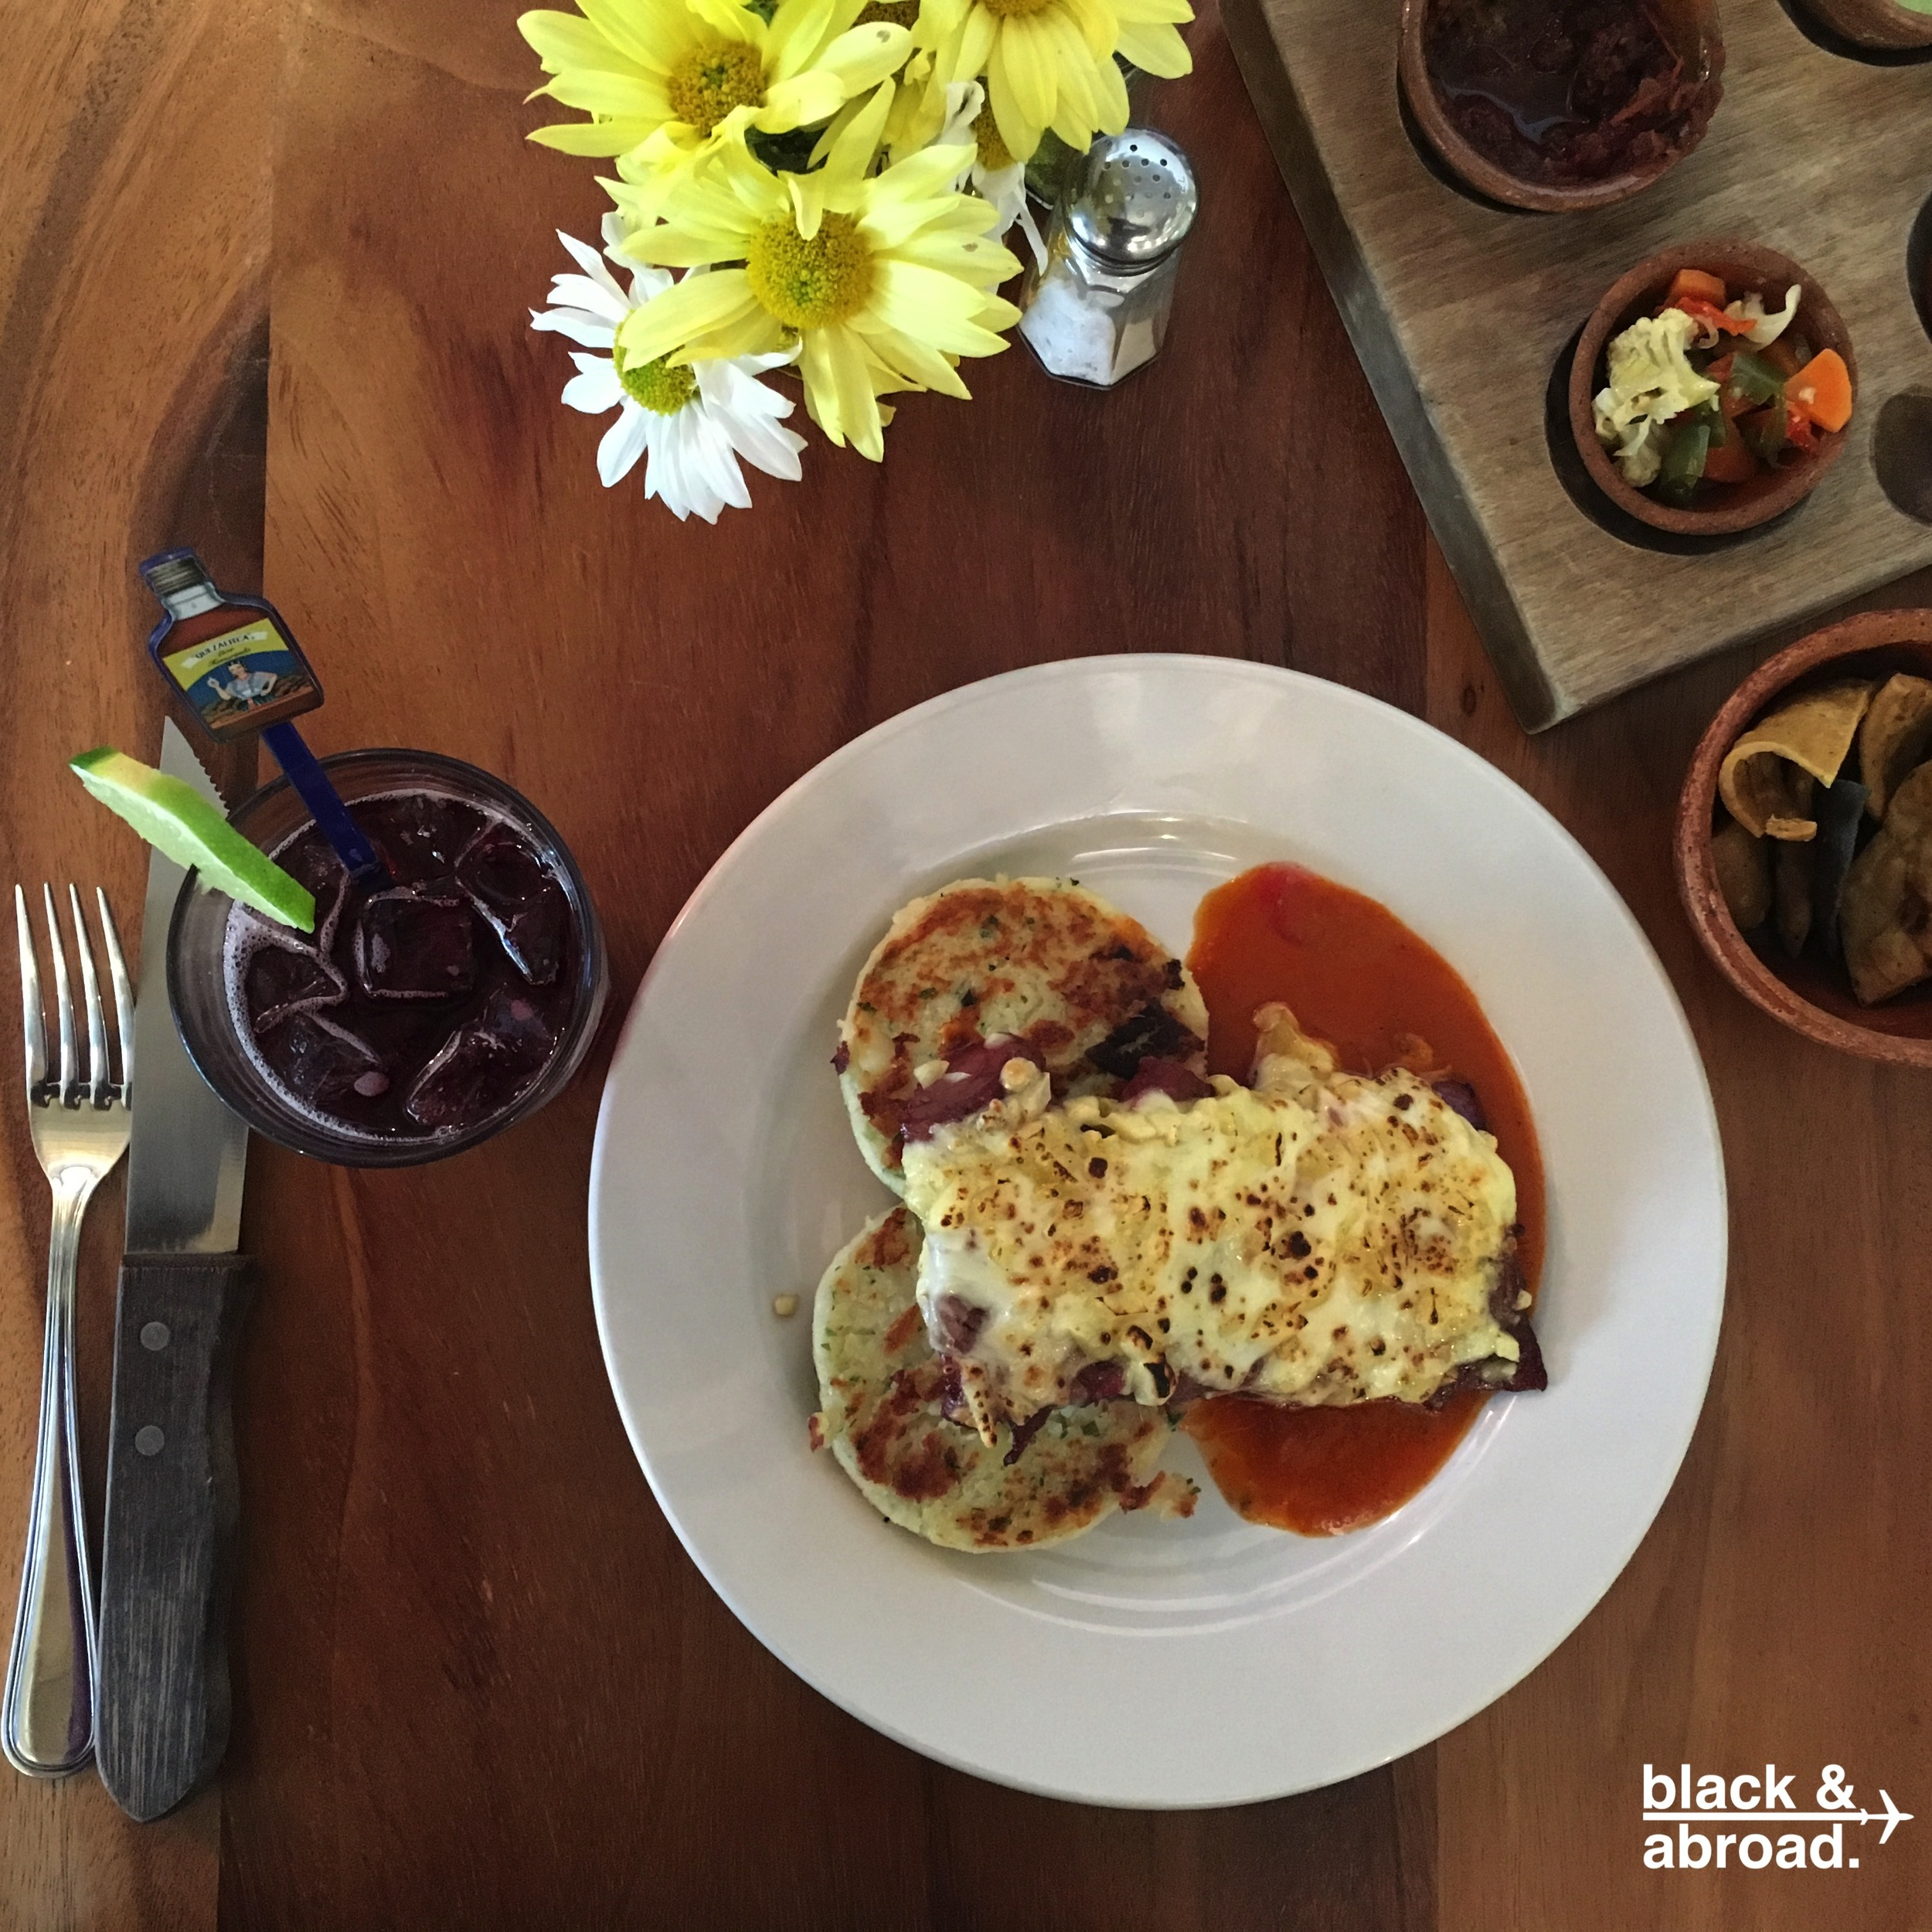 The Lomito Viajero - grilled beef tenderloin served with chancol cheese, a spicy red sauce and potato cakes.